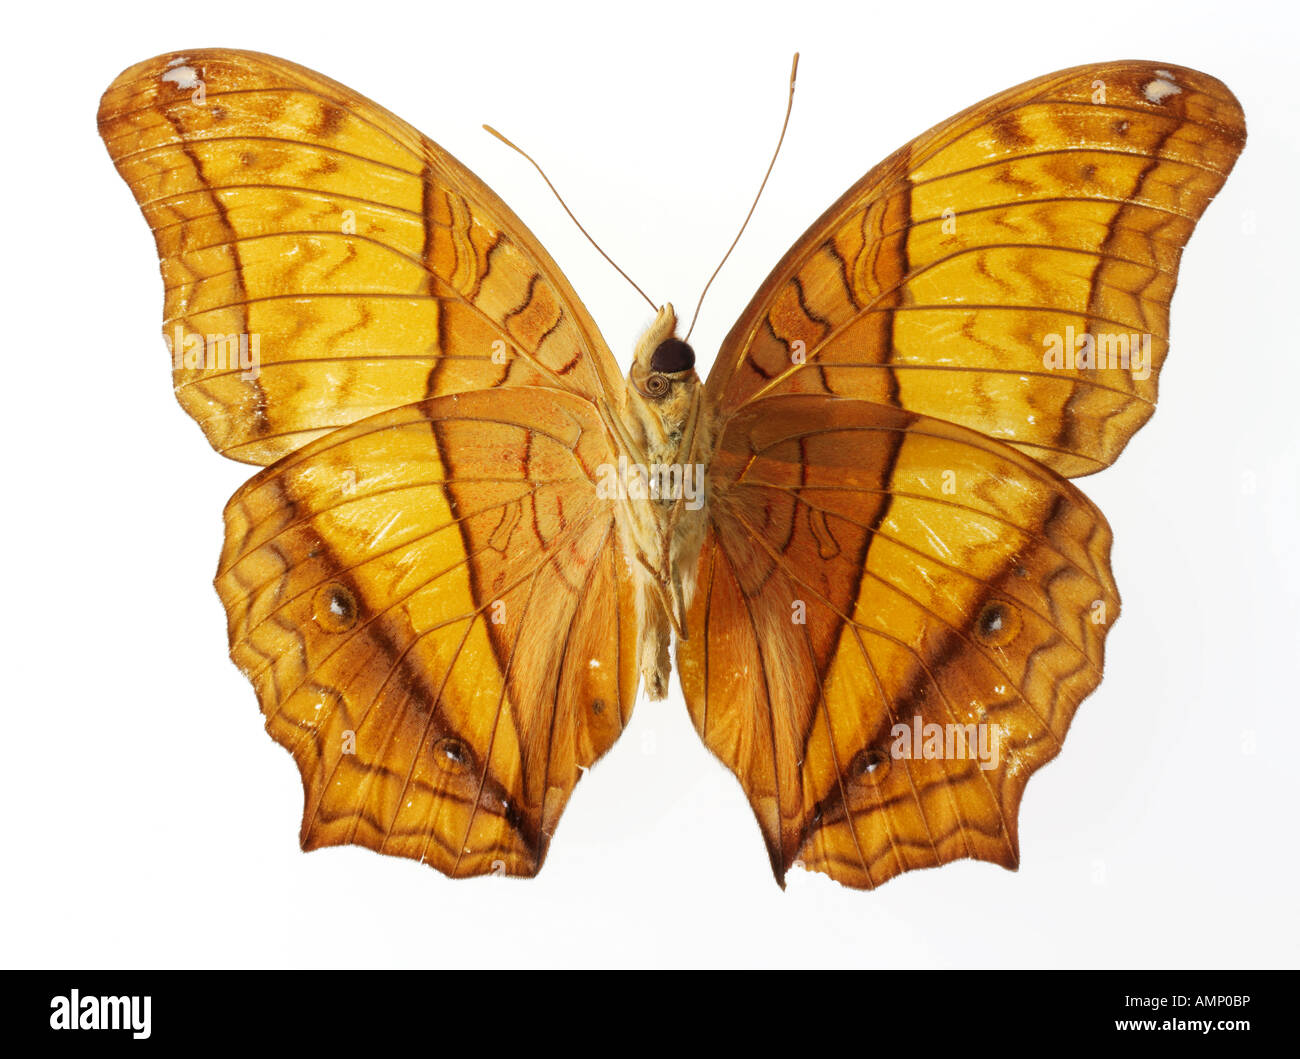 top shot plan view of a Nymphalidae butterfly, opened winged, against a white background in a studio Stock Photo